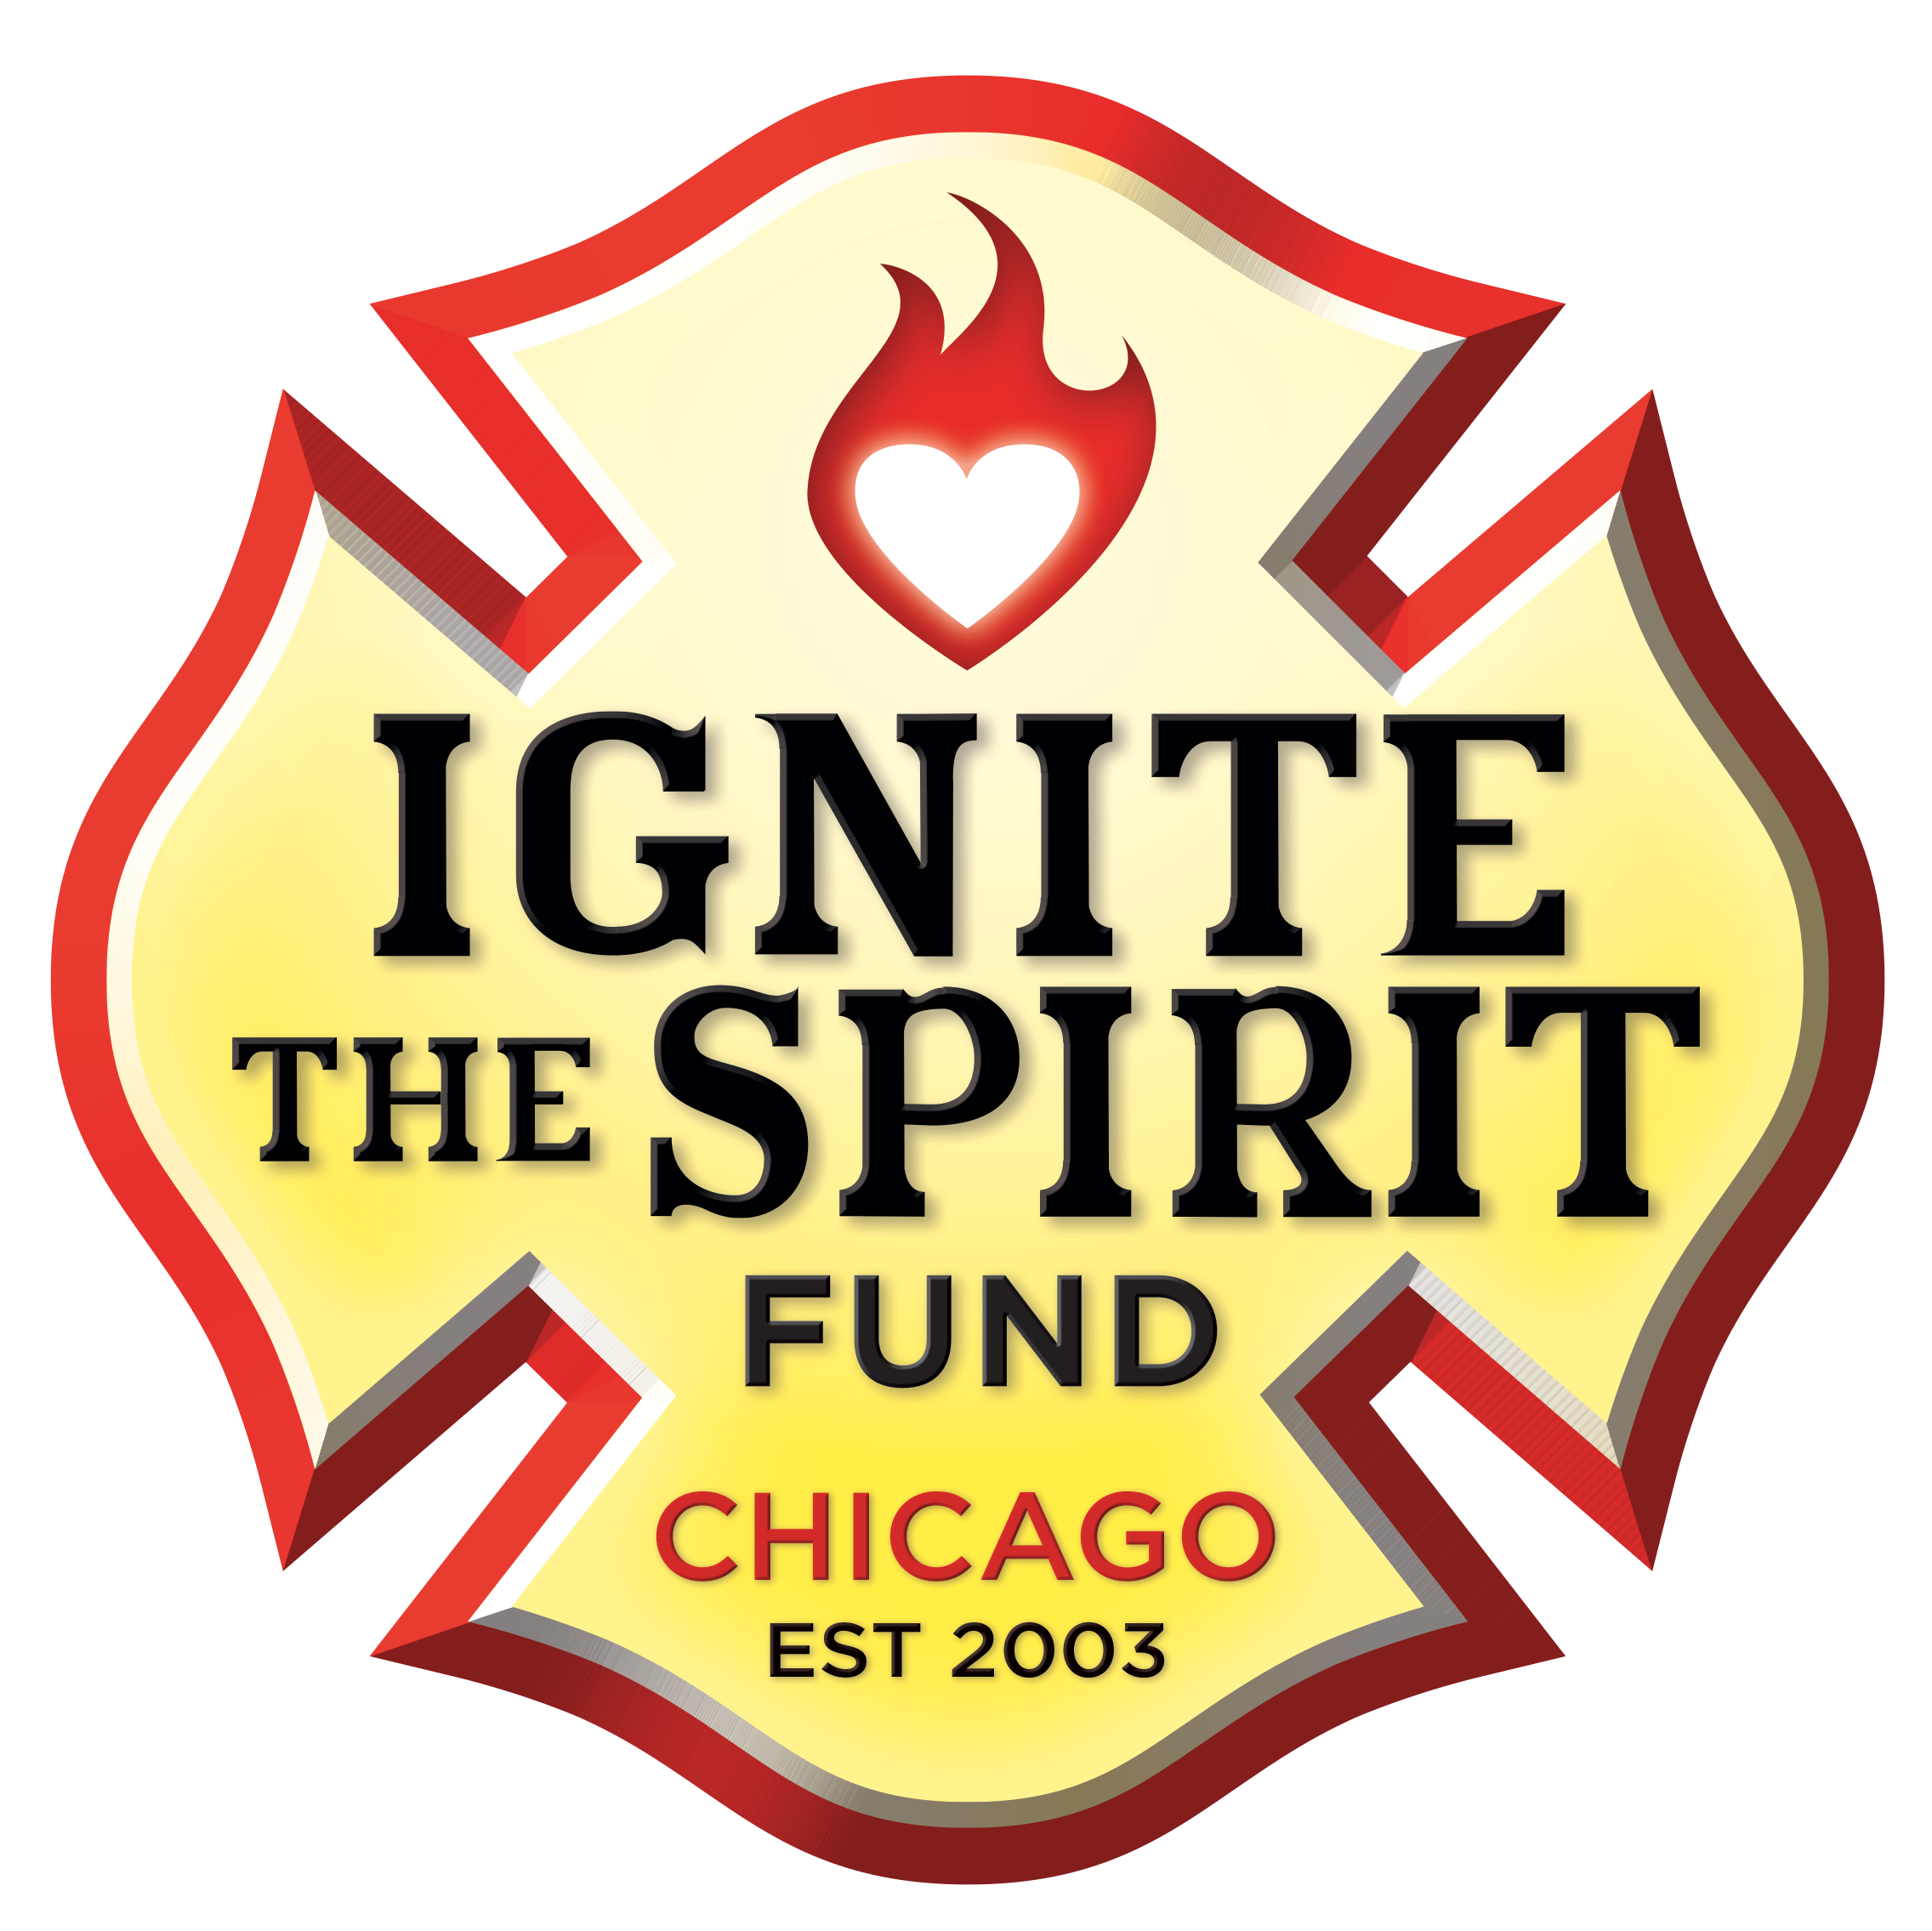 Ignite the Spirit Fund Chicago